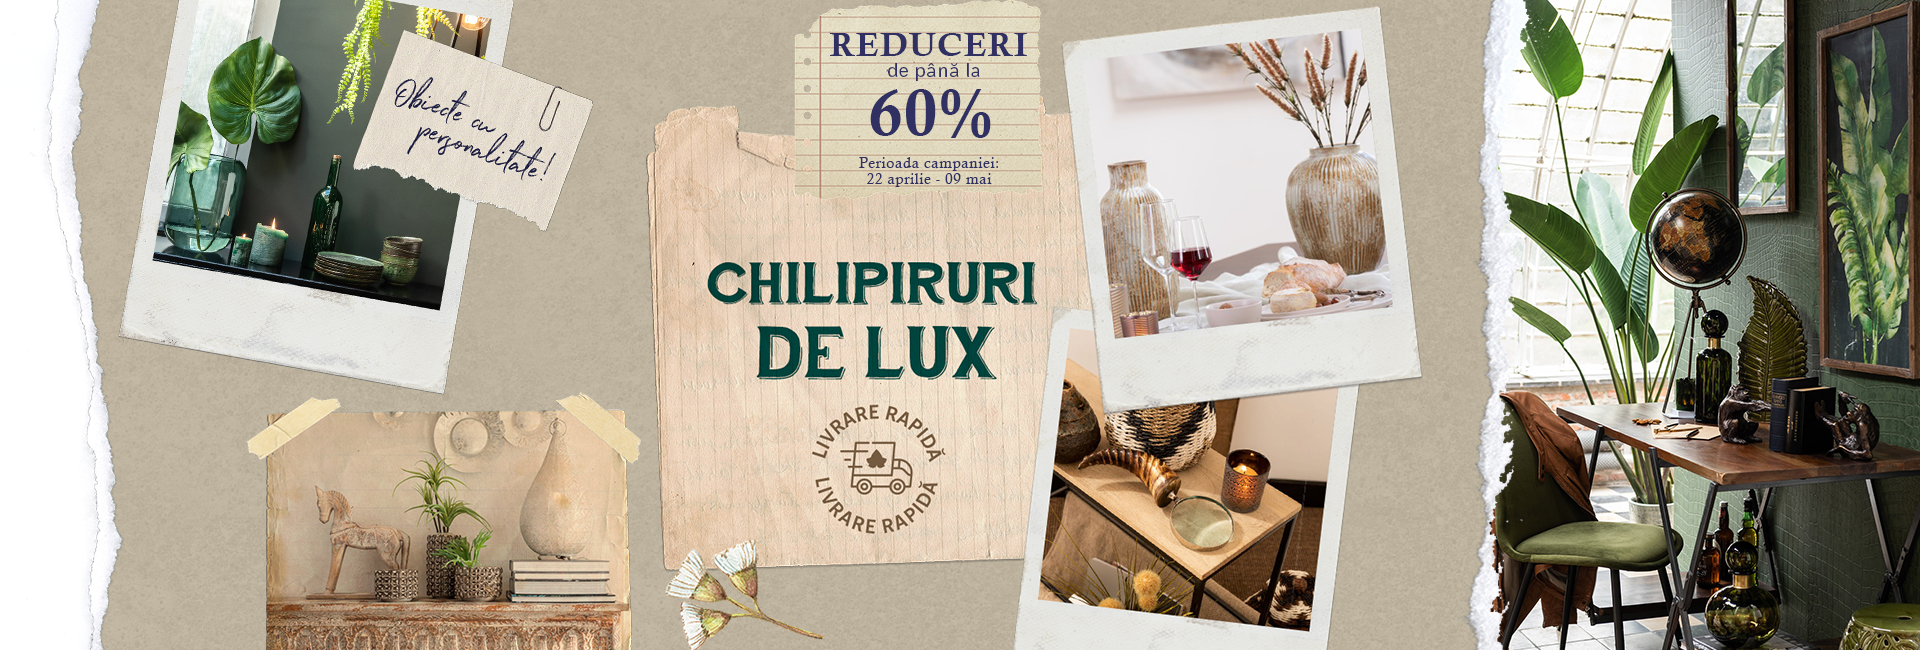 Chilipiruri de Lux